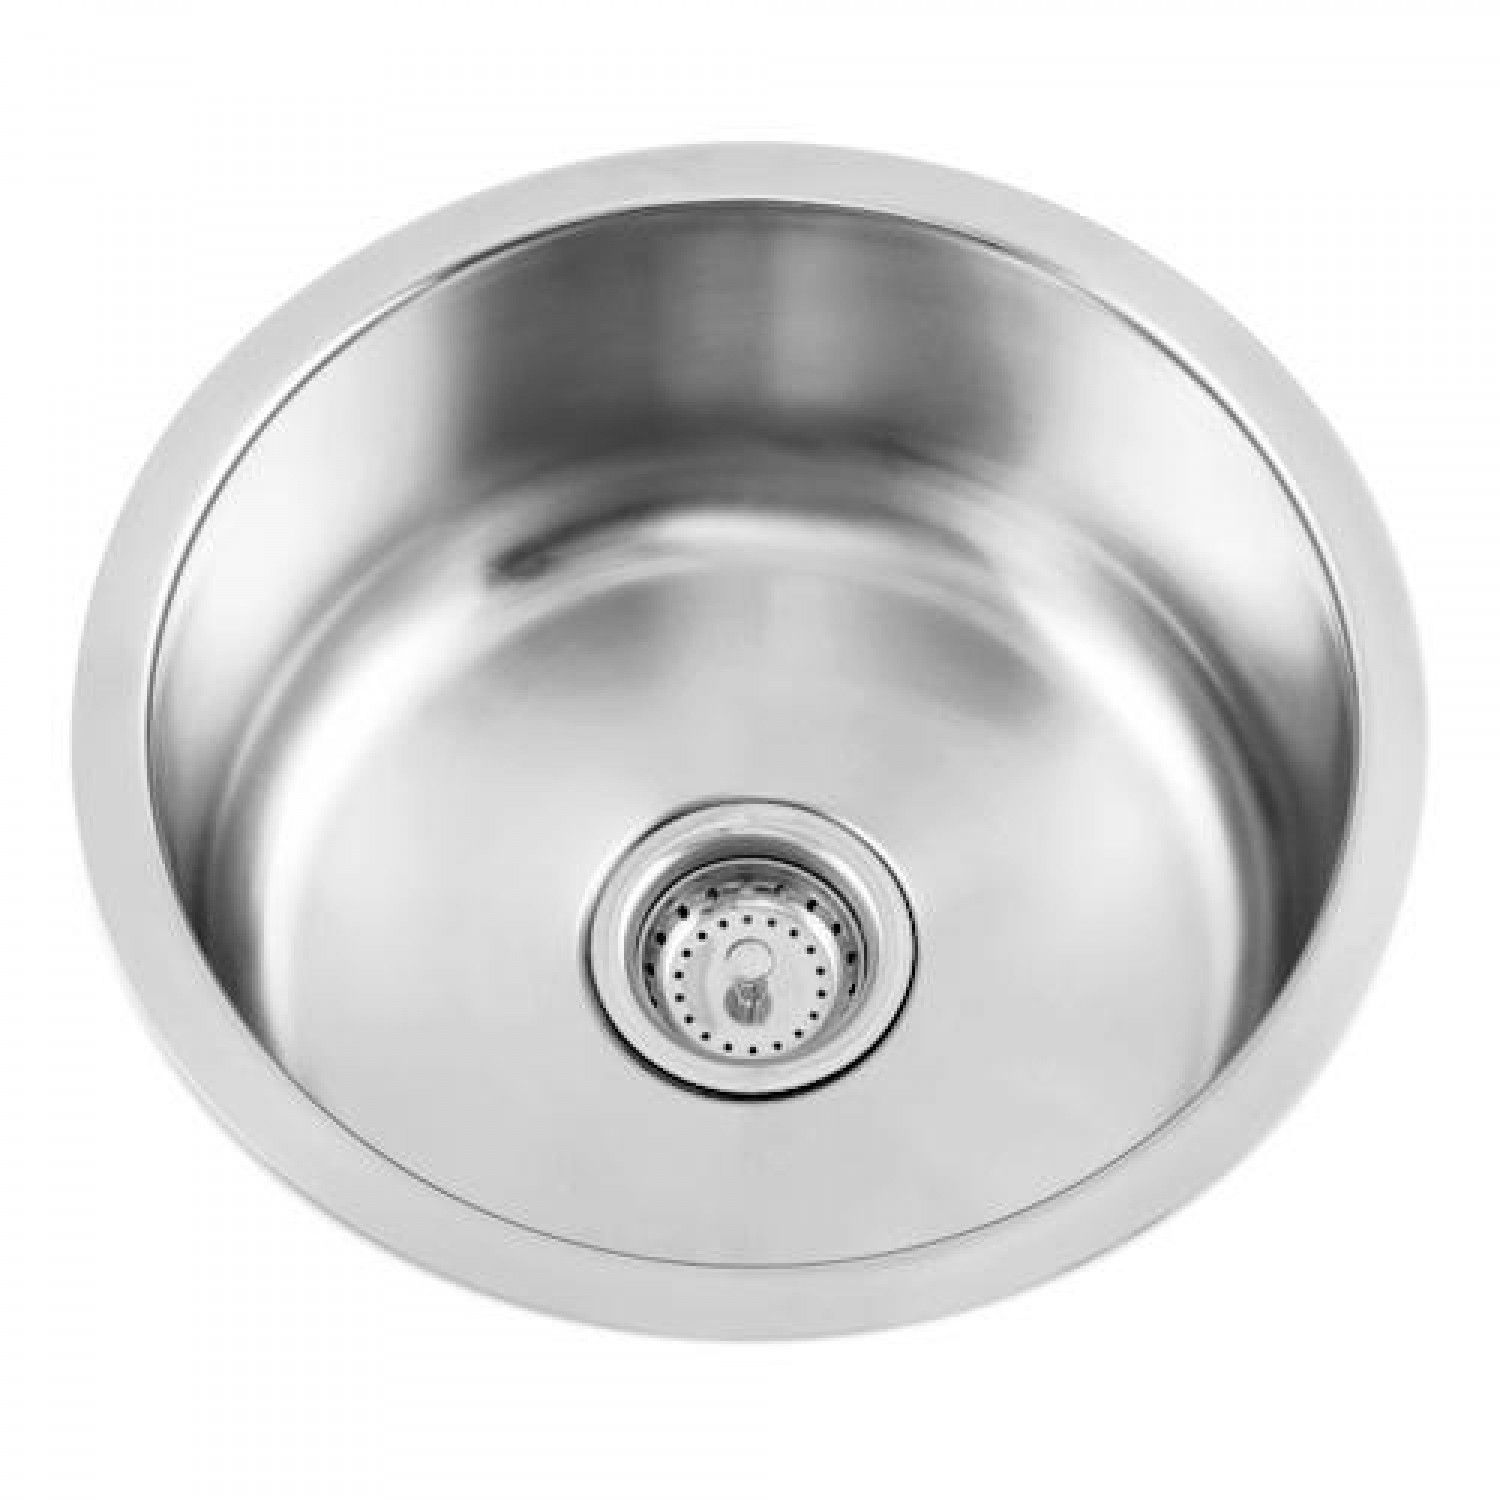 Wonderful Round Stainless Steel Undermount Bar Sink